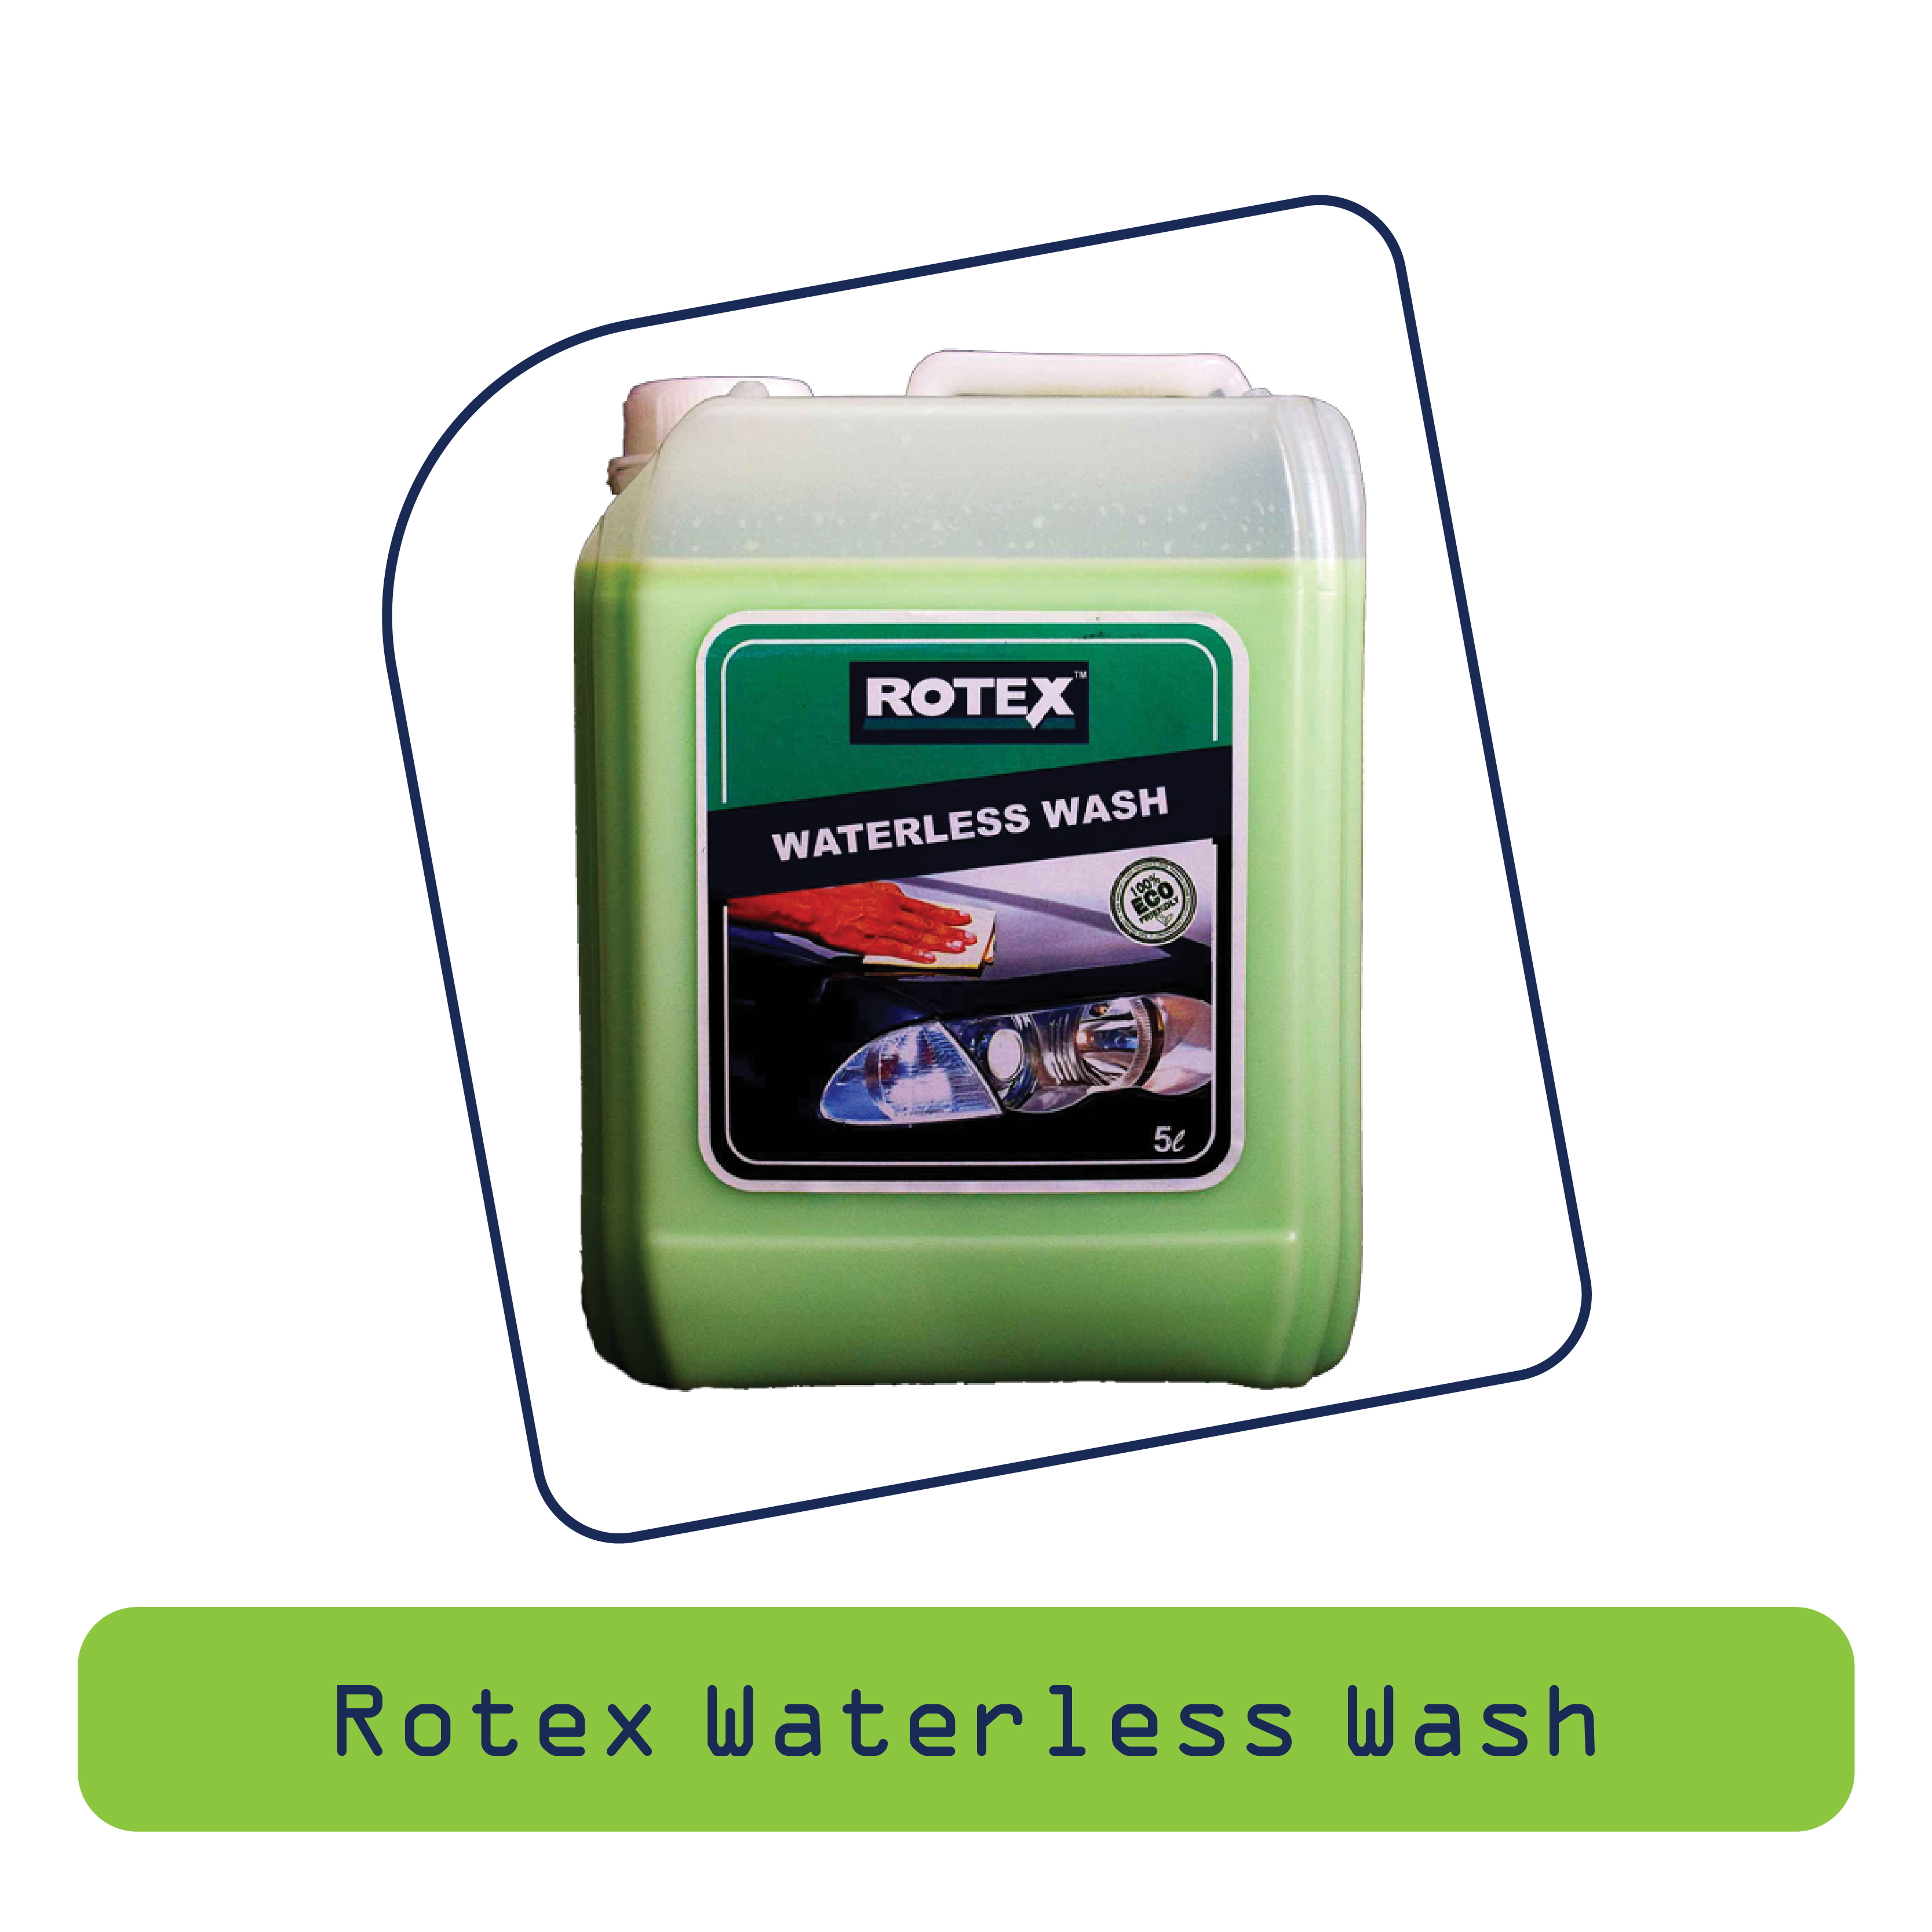 Rotex Waterless Wash